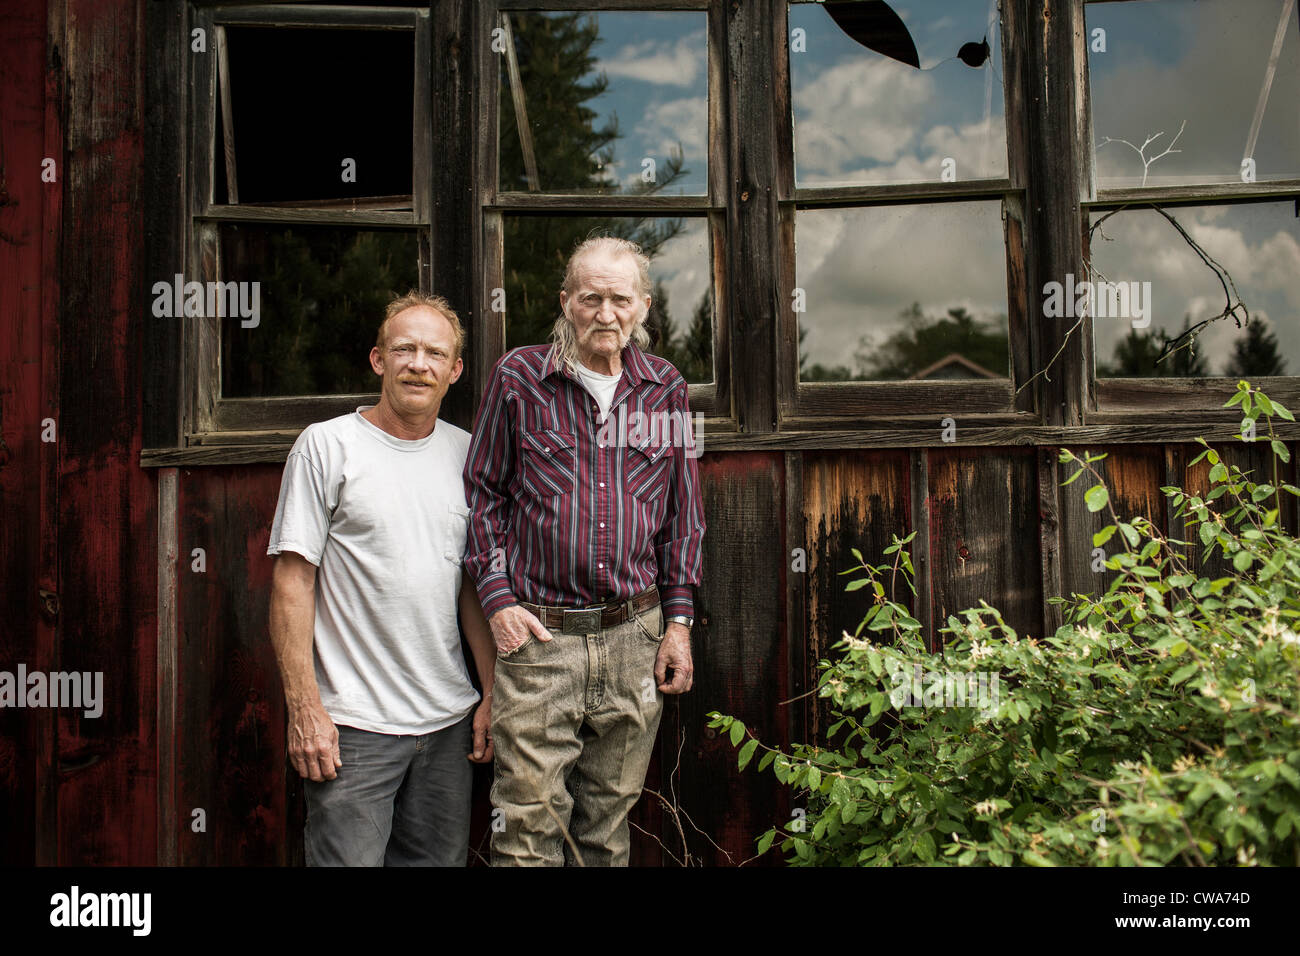 Father and son outside shack, portrait - Stock Image